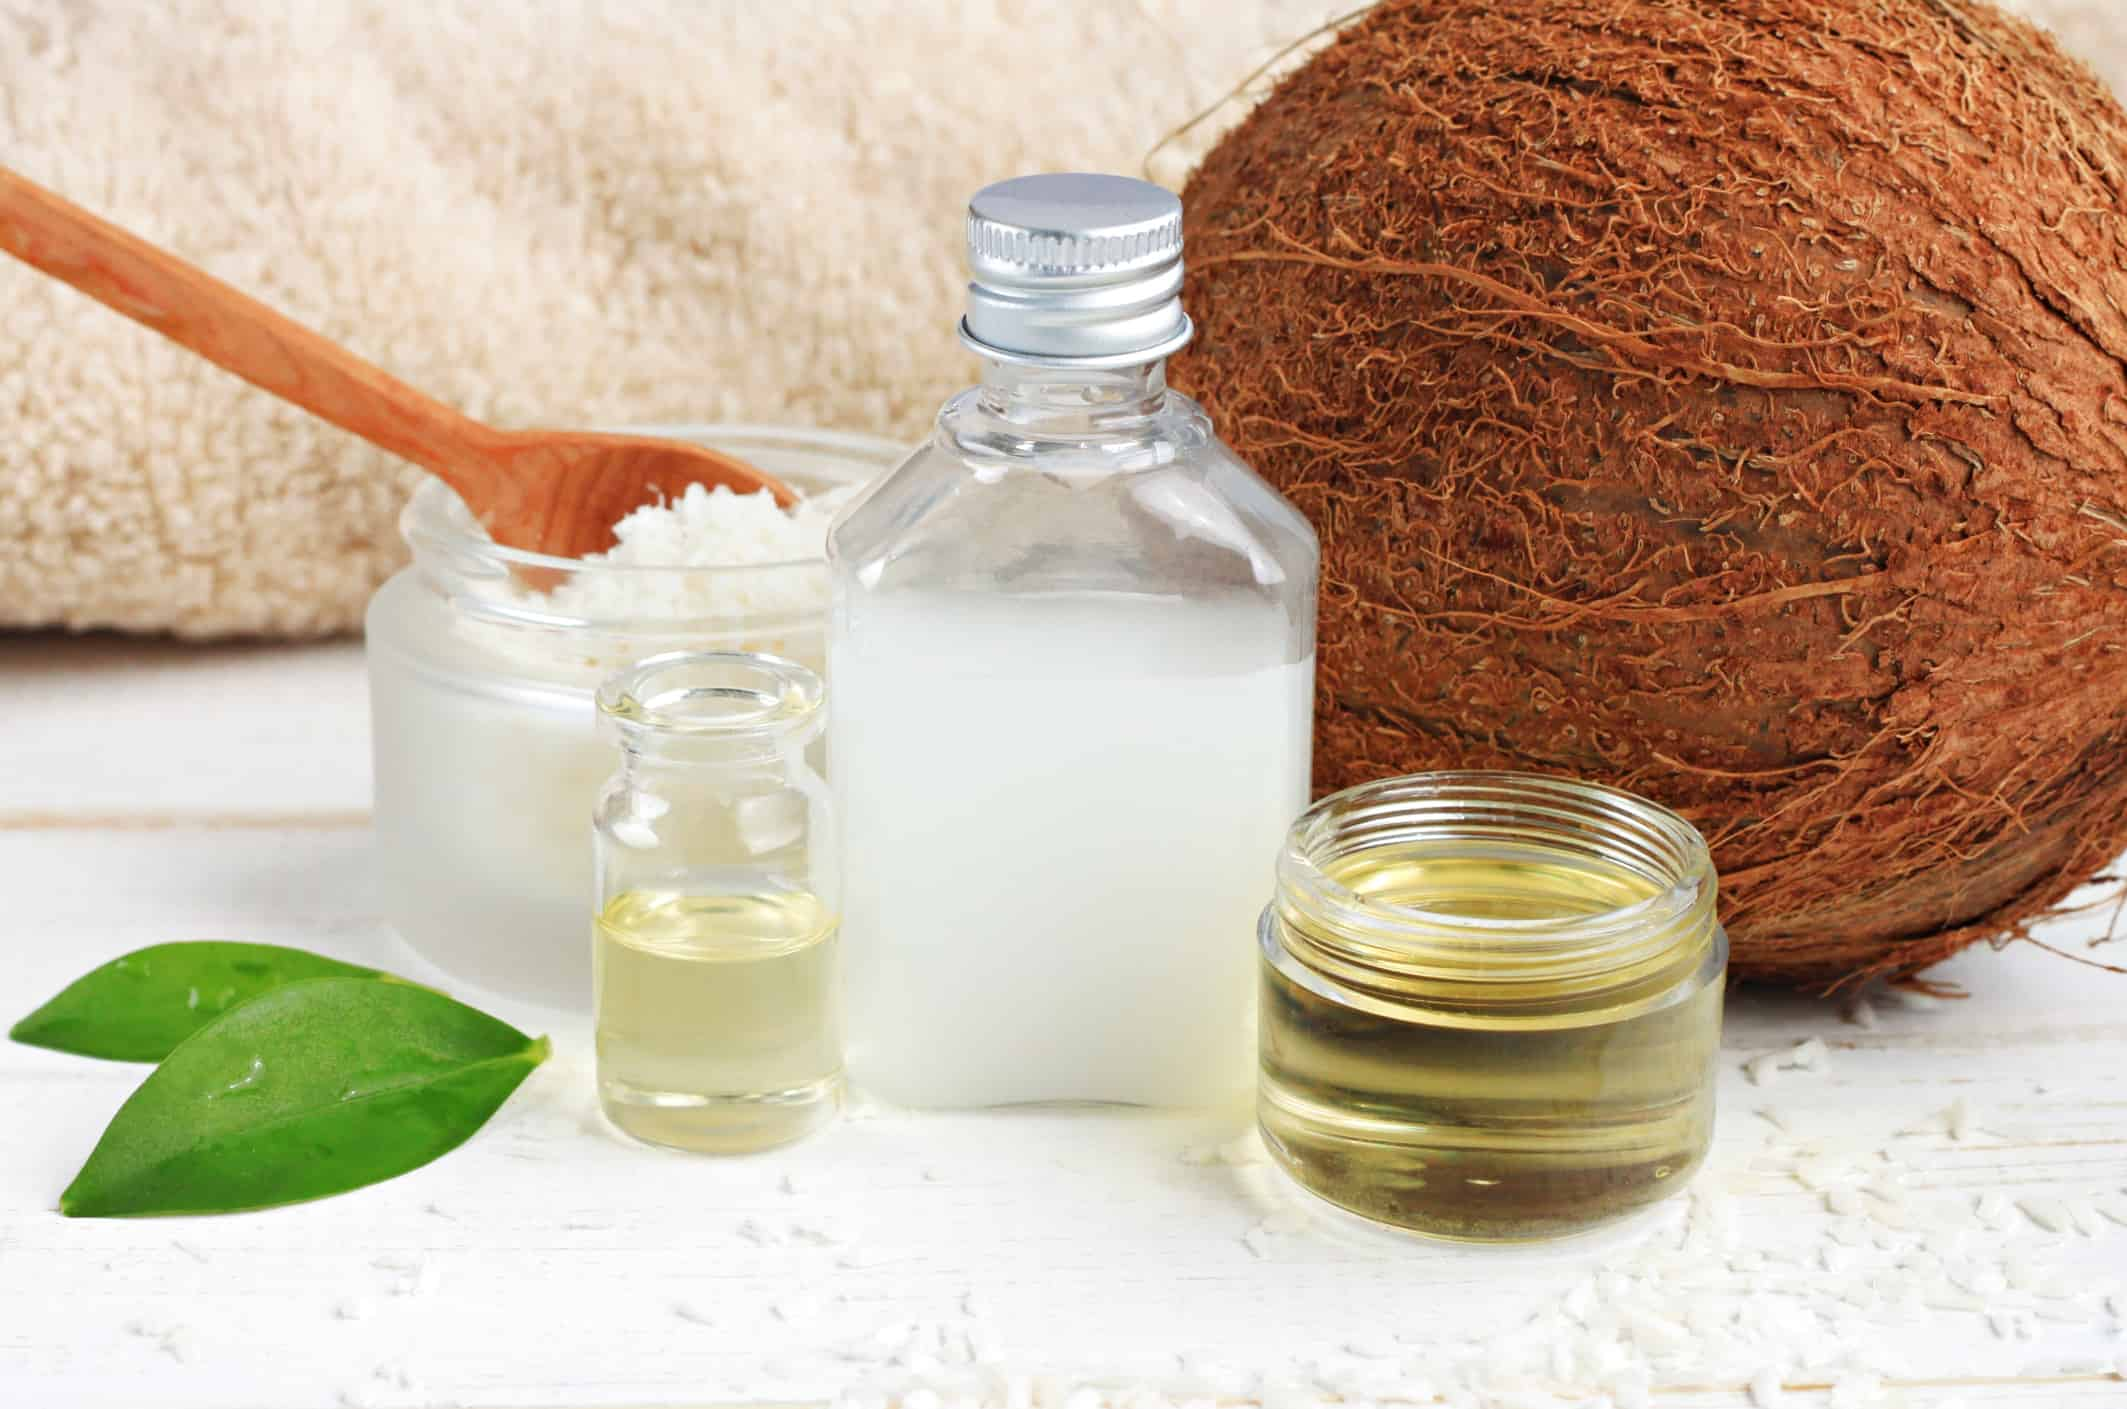 Skincare benefits. Bottles coconut oil, coconut milk, shavings.